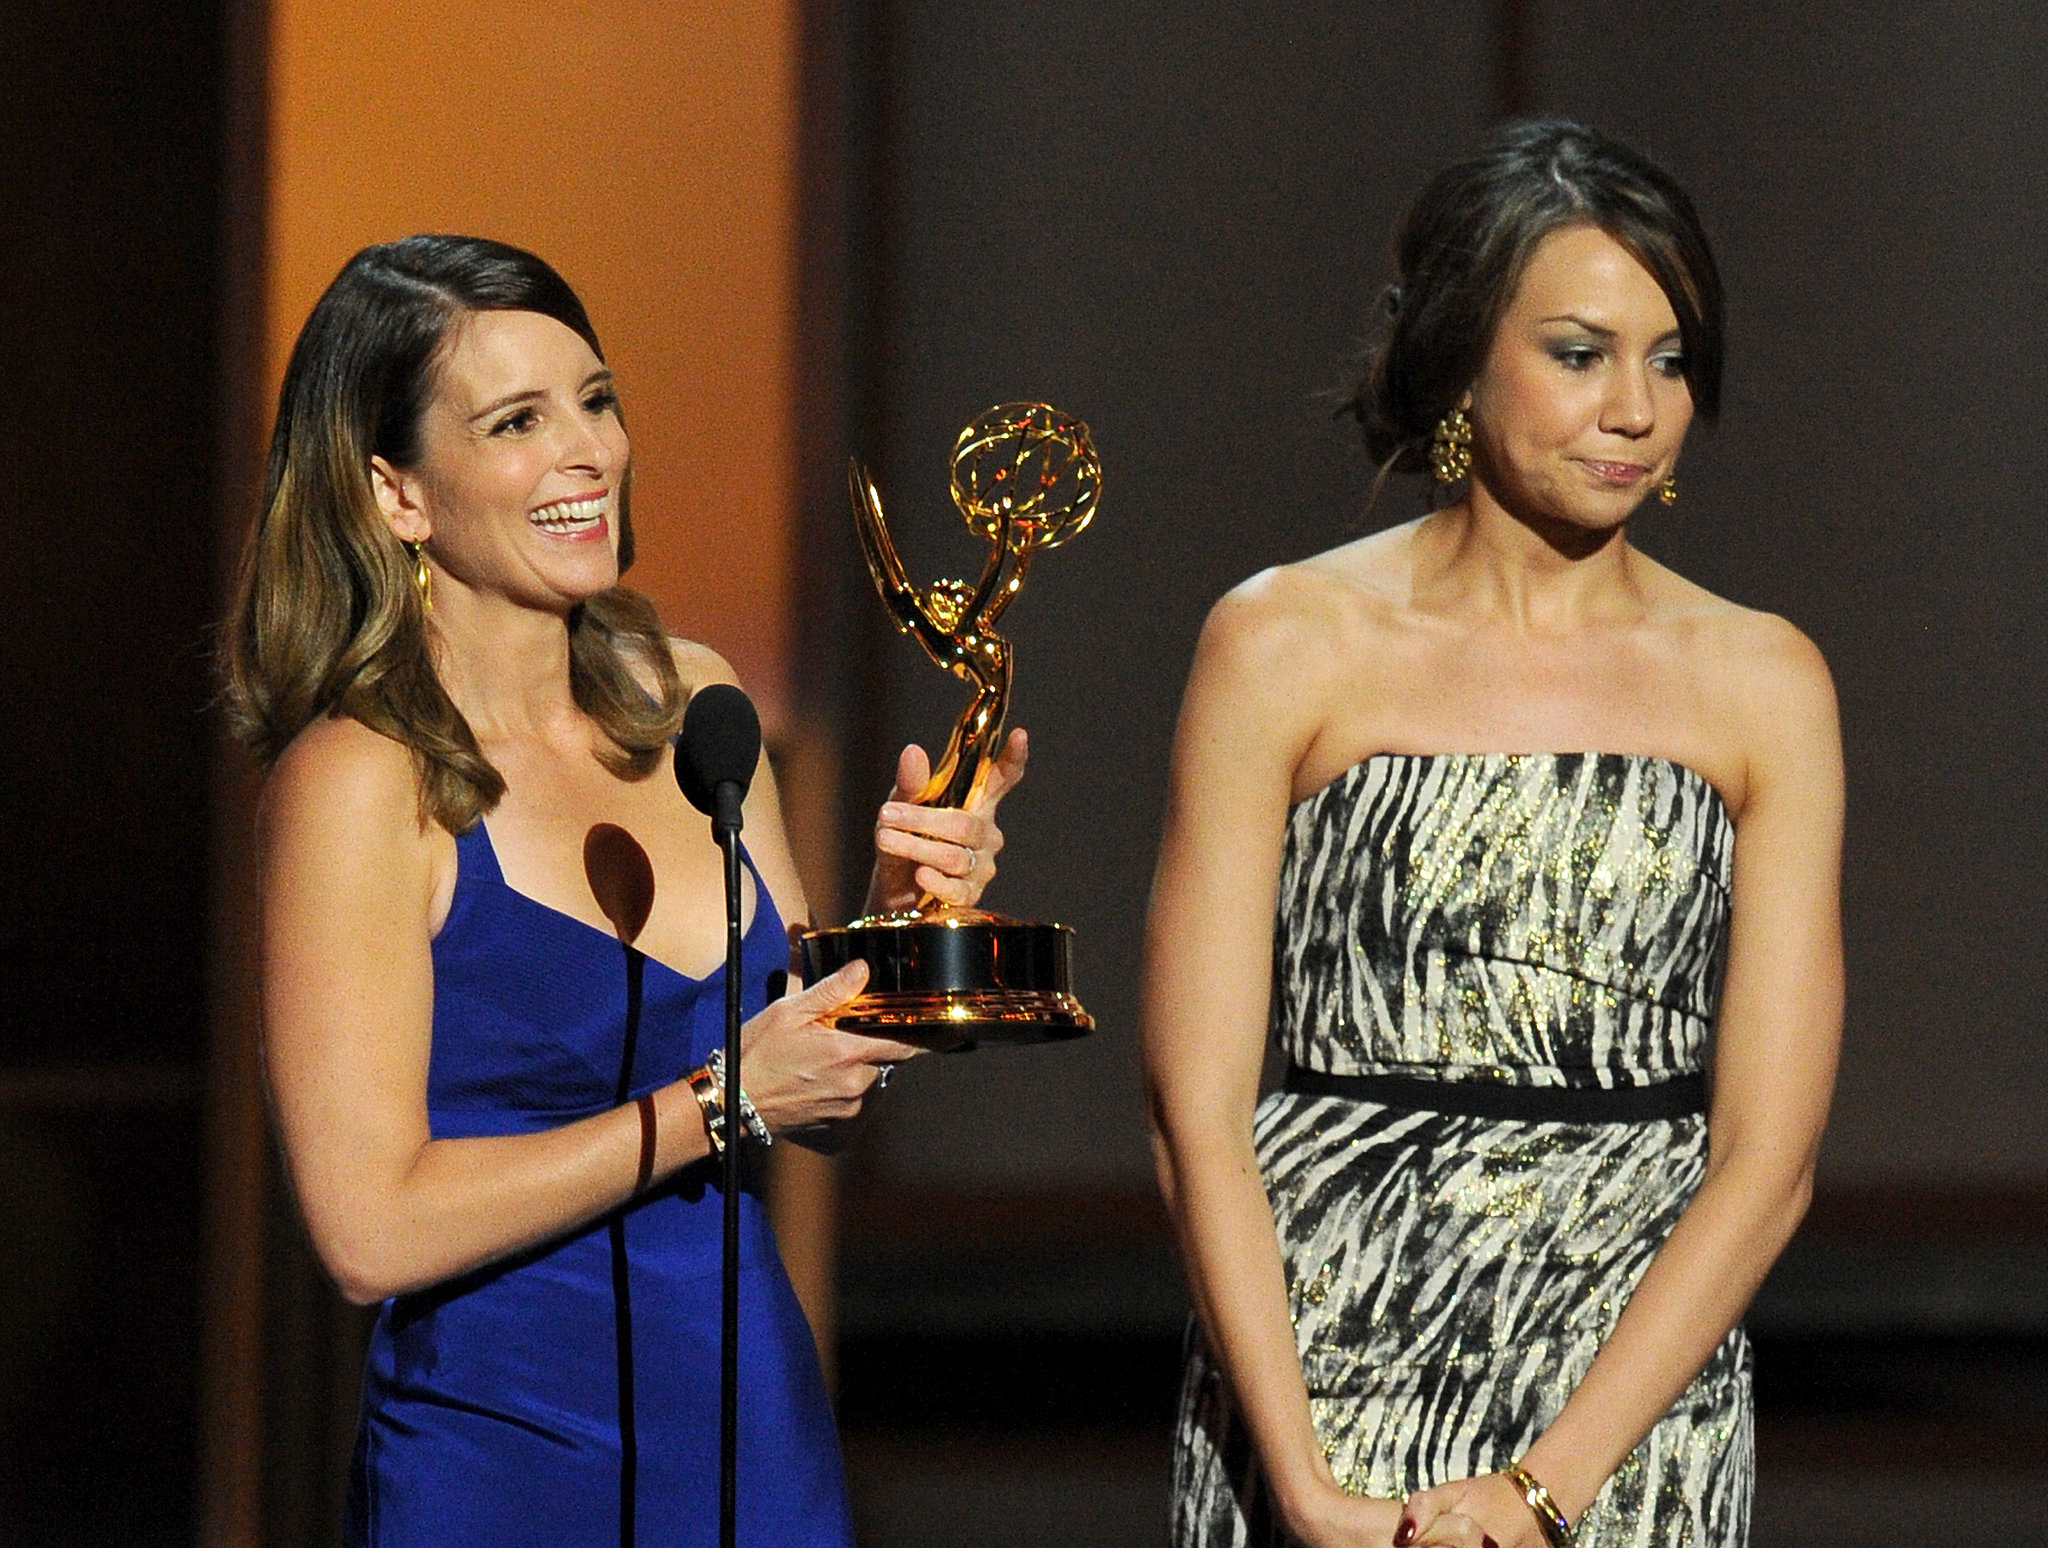 Tina Fey and her 30 Rock writing partner Tracey Wigfield won the award for best writing fo